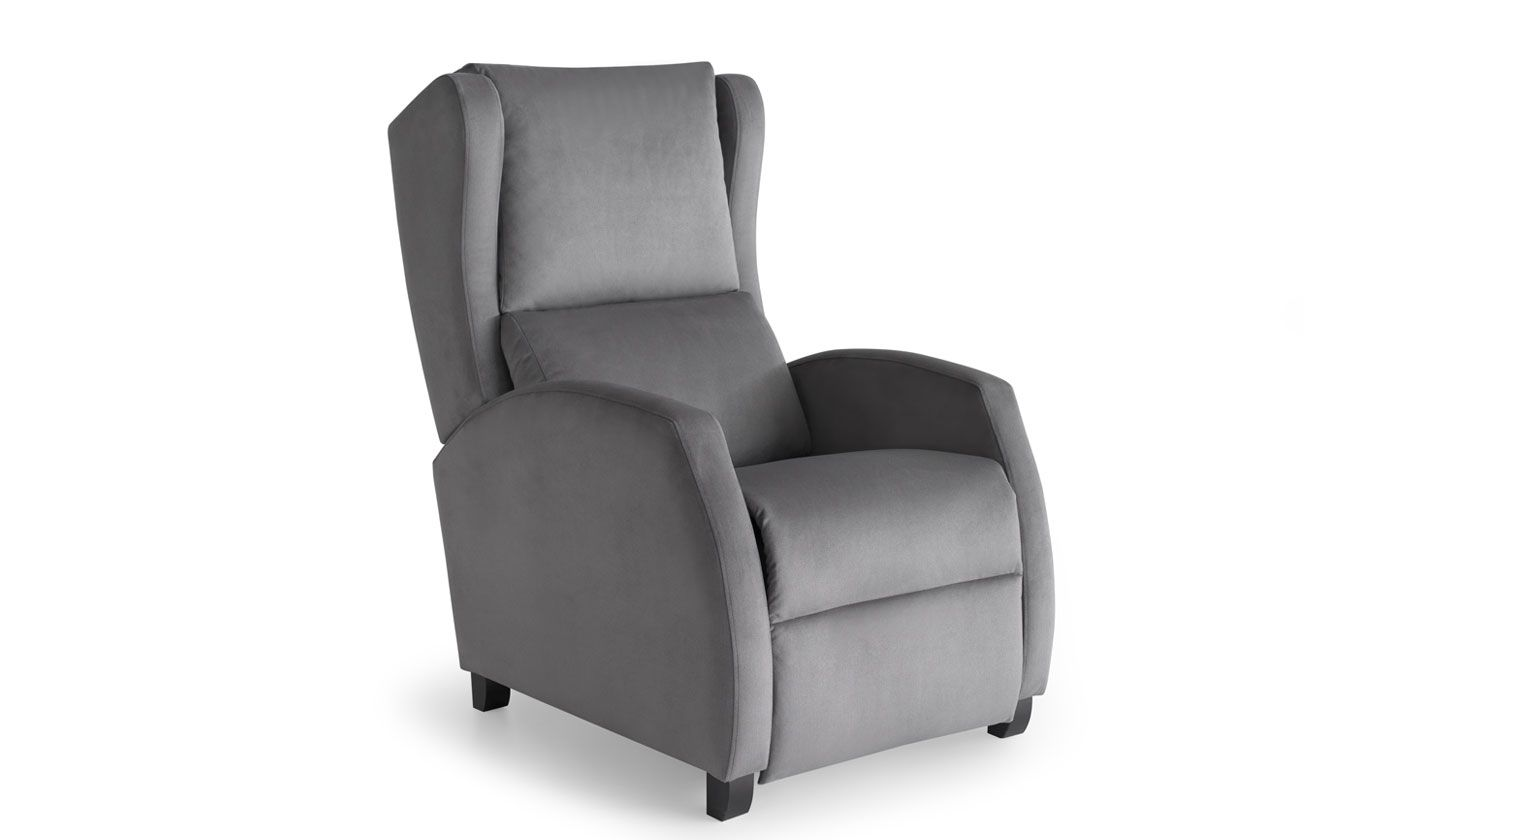 Sill N Relax Irazu Sillones Relax ~ Sillones Altos Para Personas Mayores